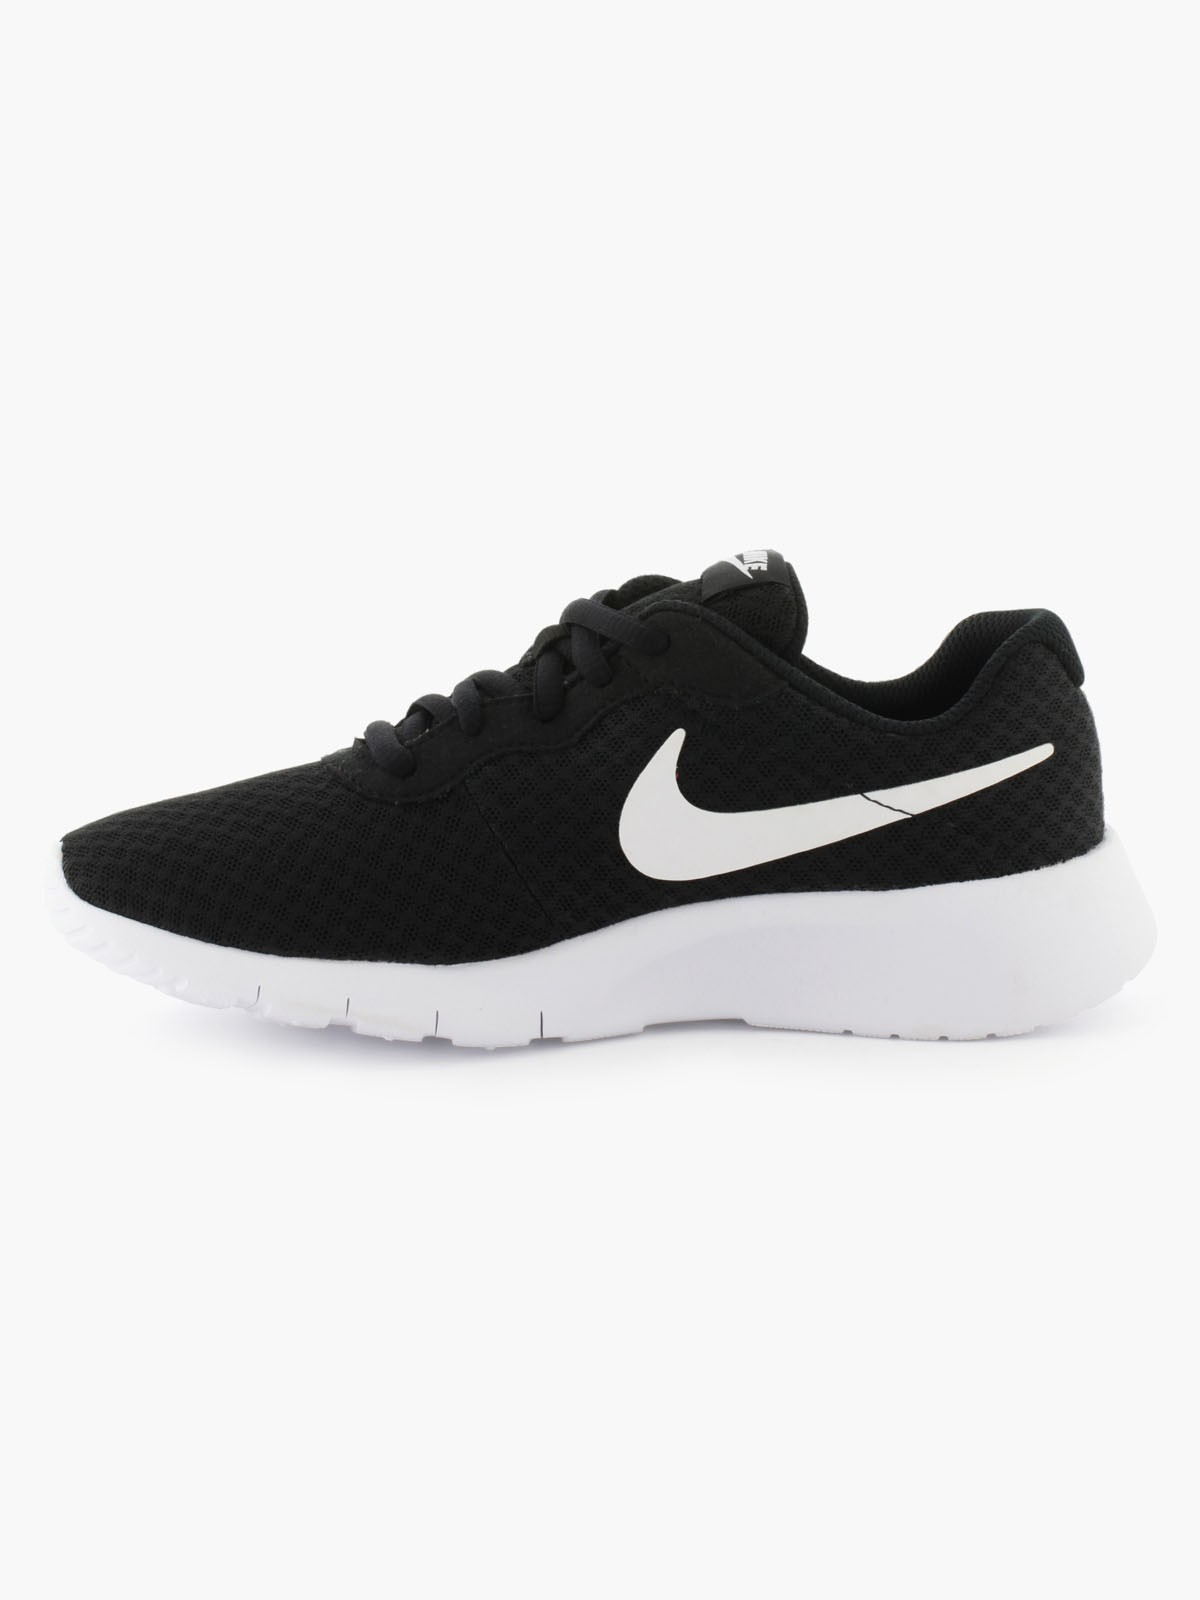 nike tanjun homme halle aux chaussures